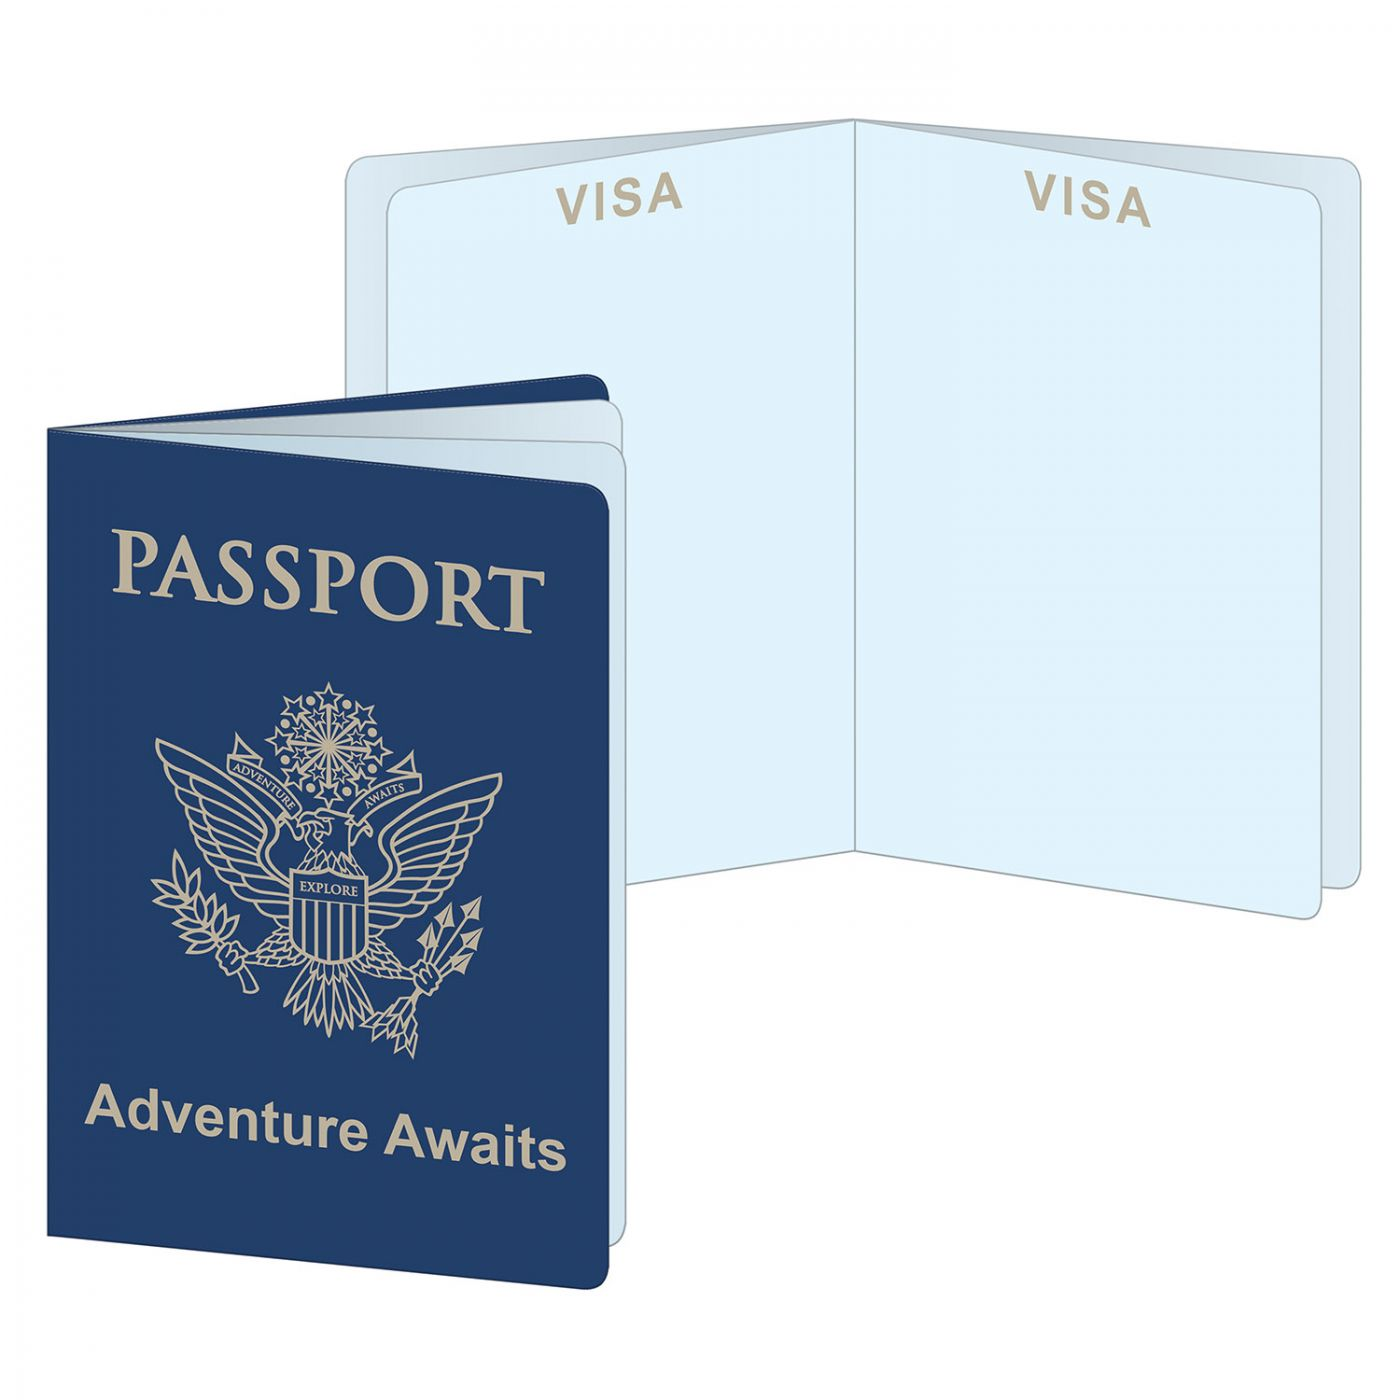 Around The World Passports image